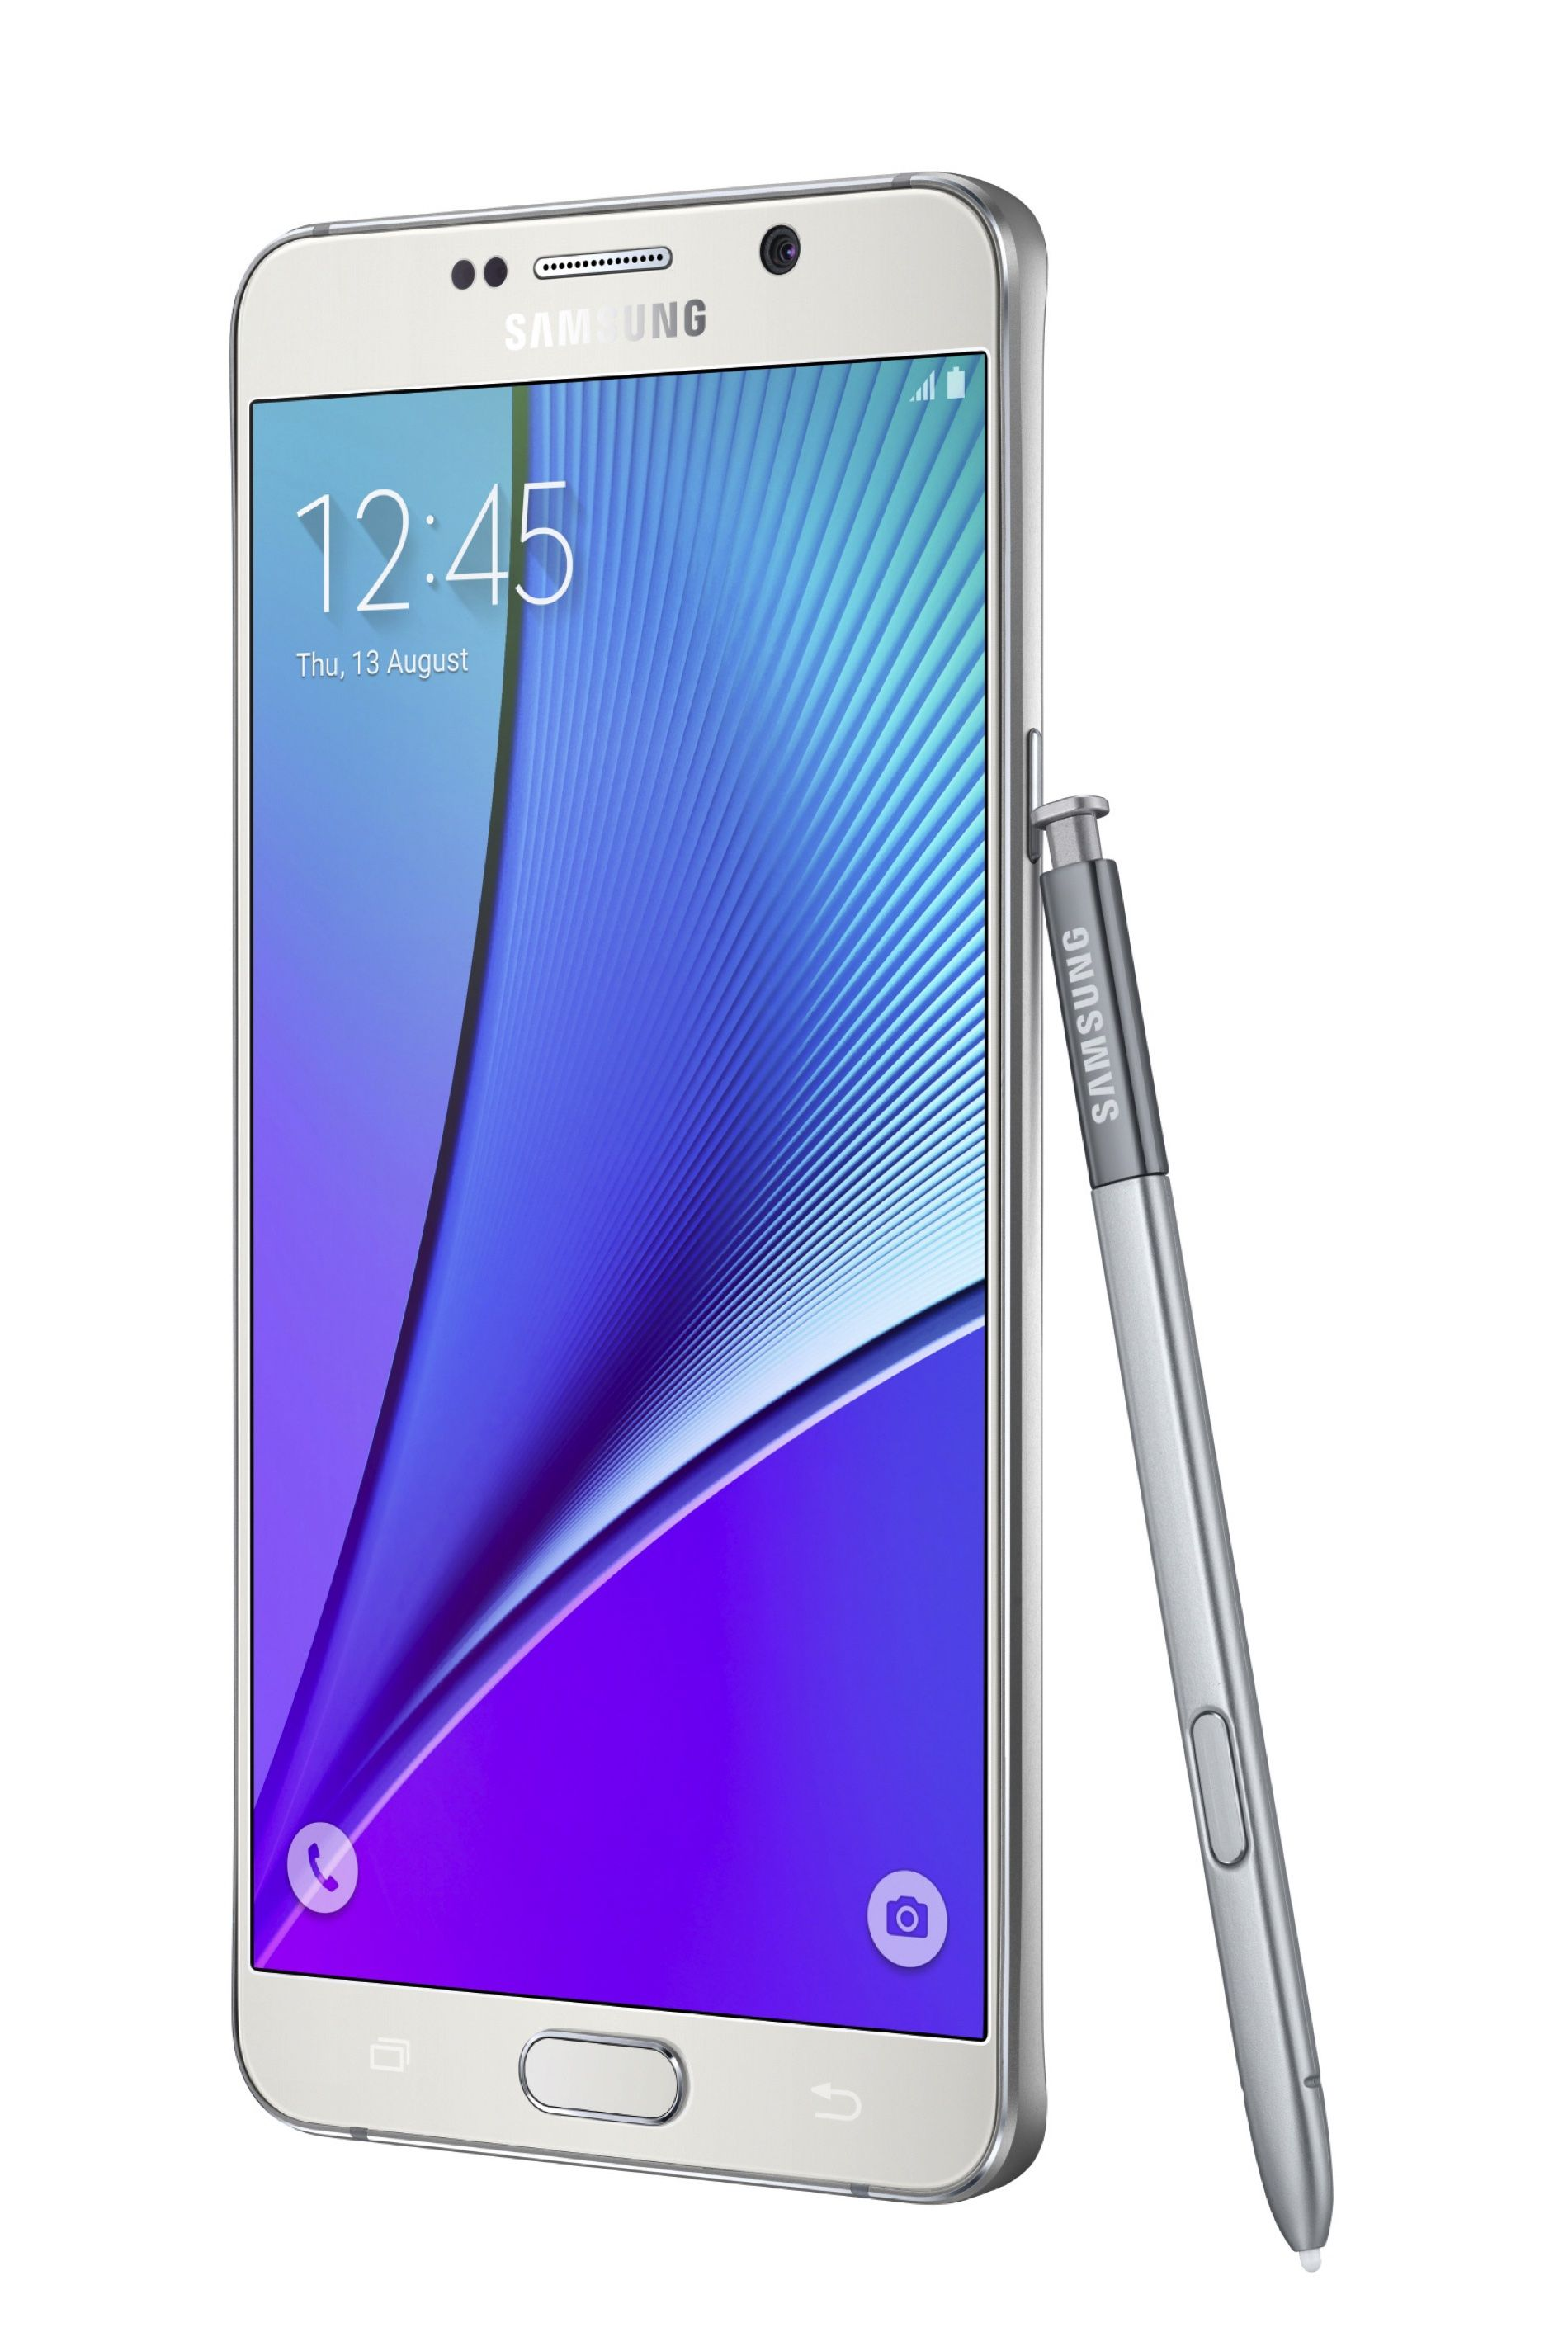 At T Will Be Carrying The Samsung Galaxy Note 5 Samsung Galaxy Best Android Phone Galaxy Note 5